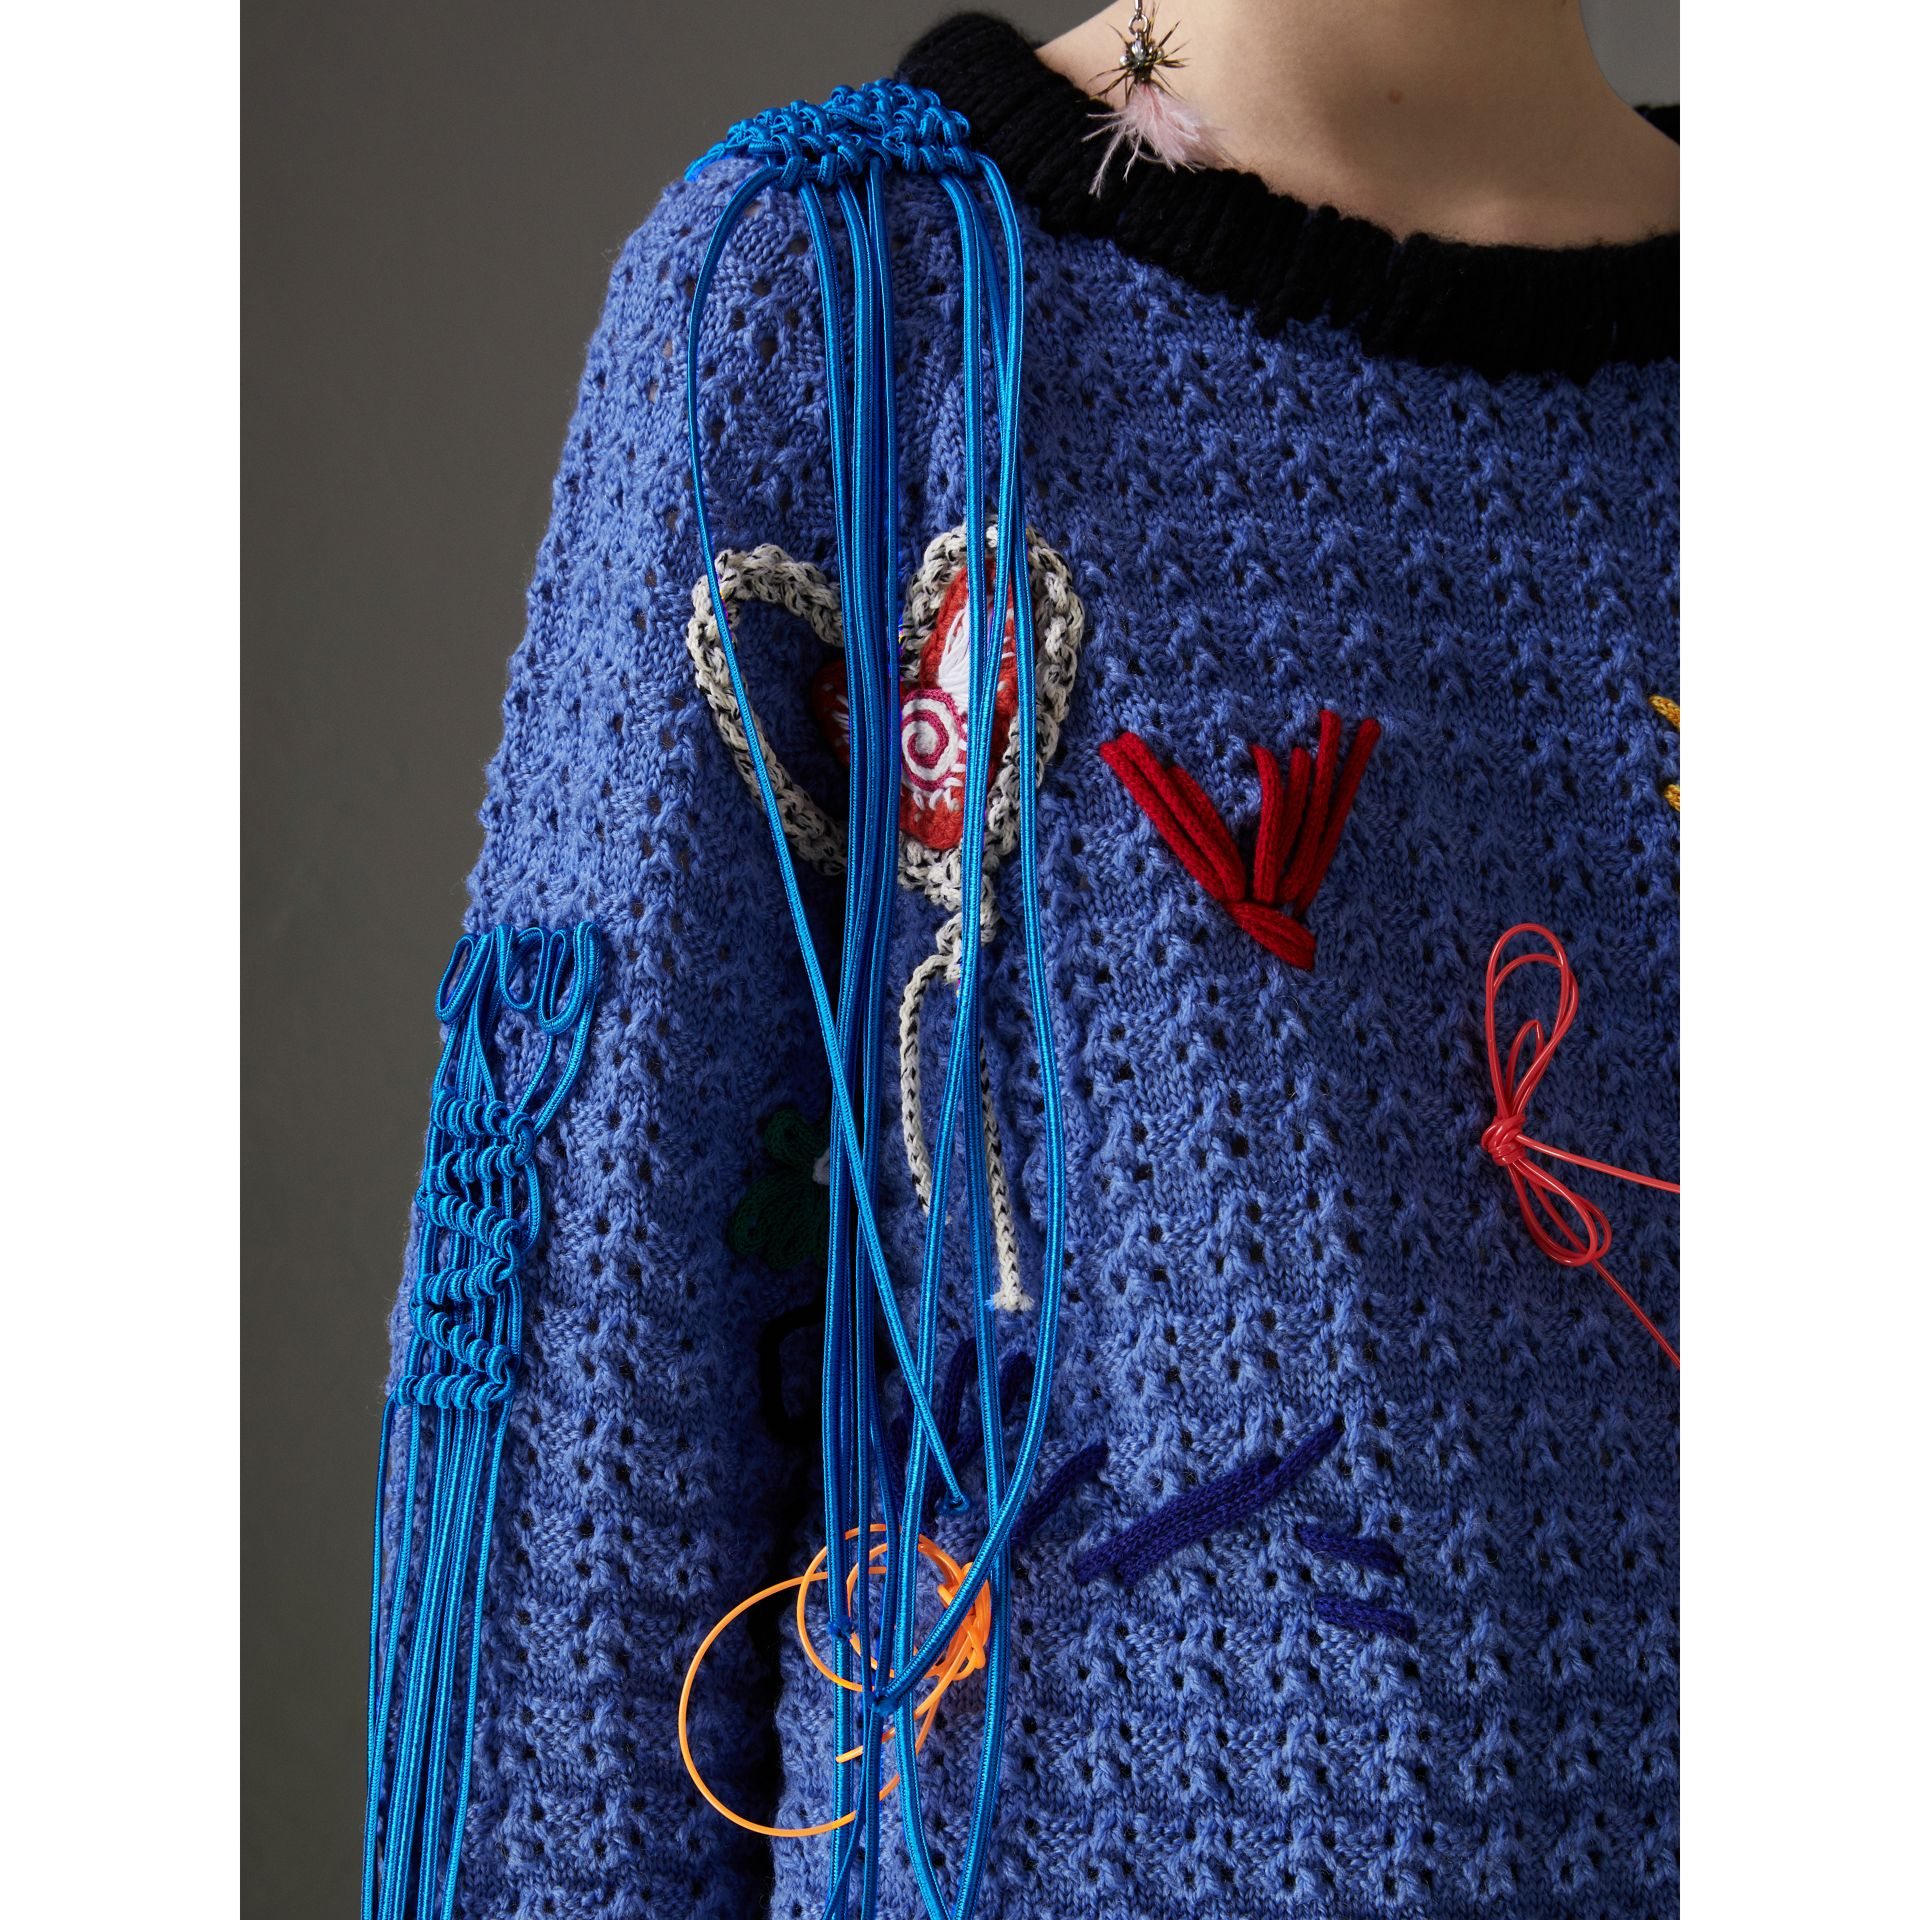 Embellished Wool Lace Sweater in Blue - Women | Burberry Australia - gallery image 1